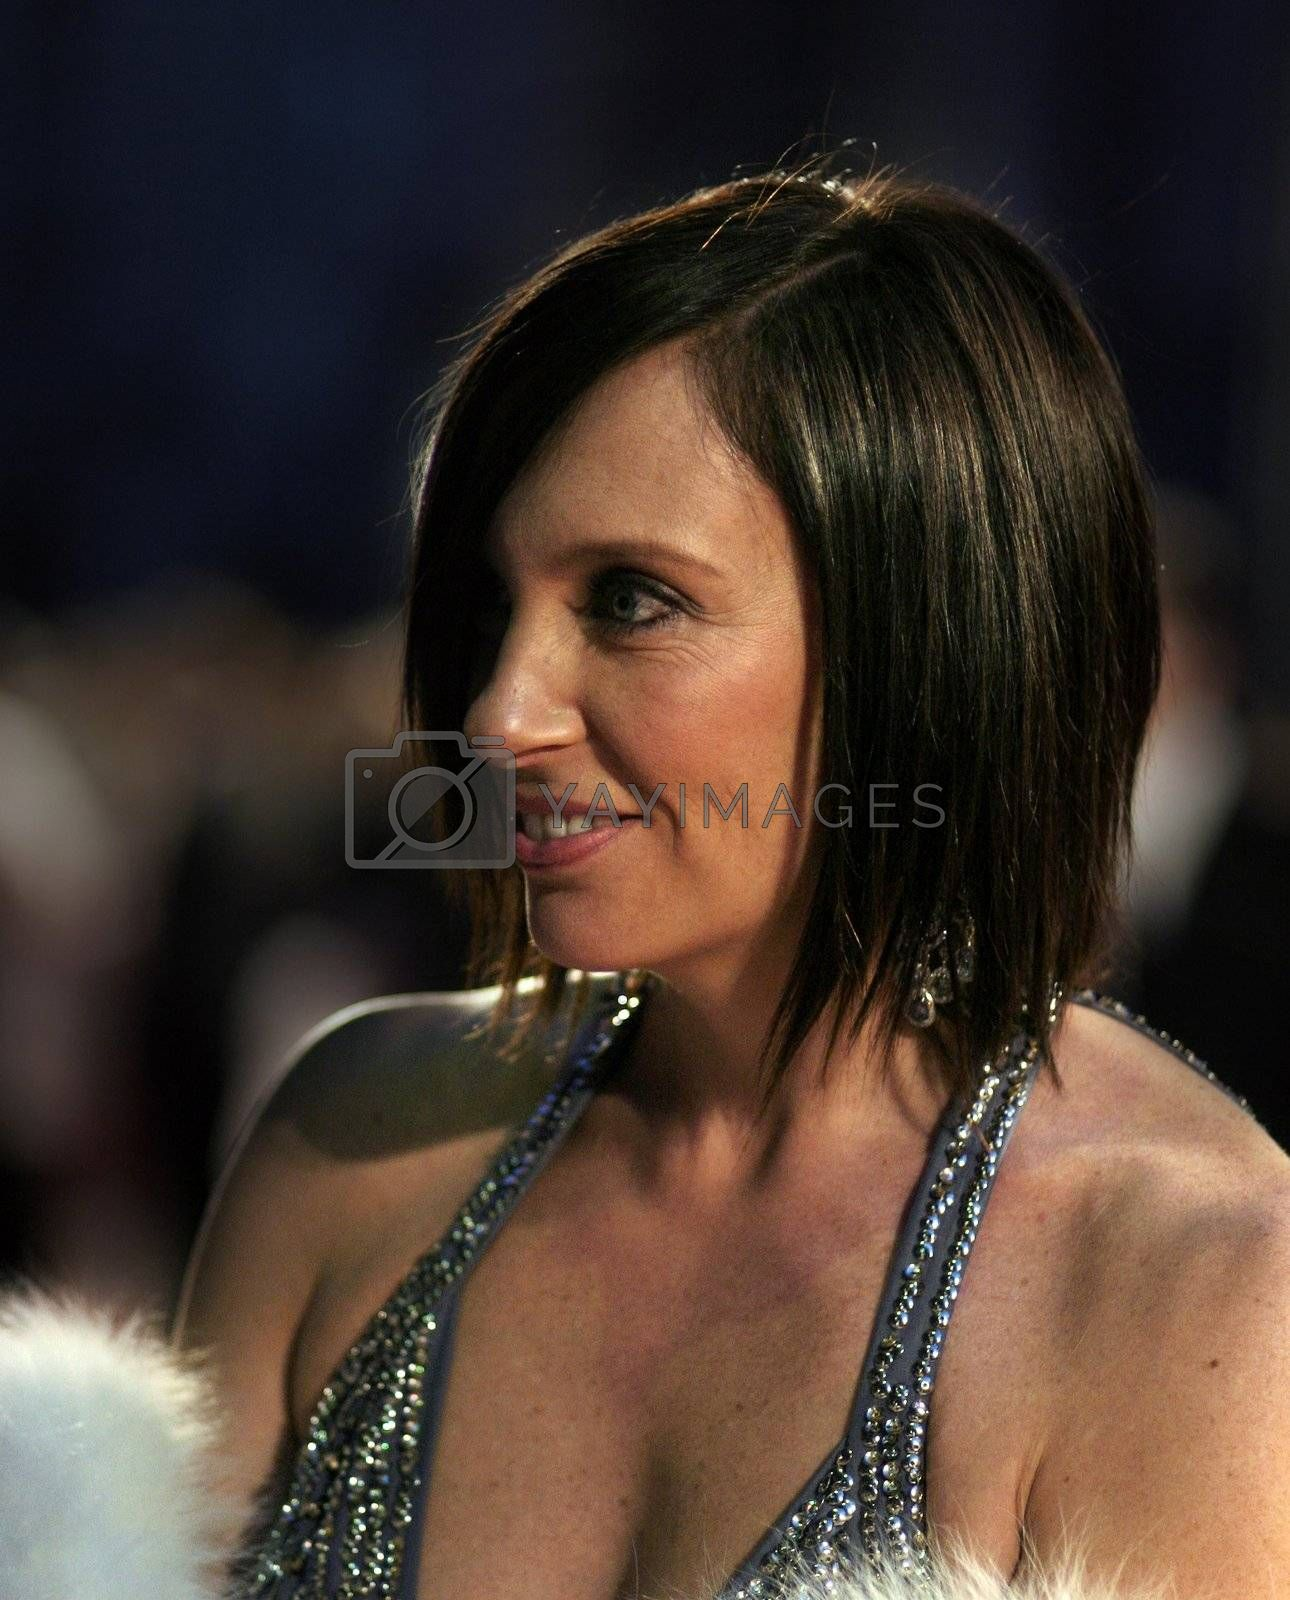 Actress Toni Collette arrives at the Orange British Academy Film Awards in London's Royal Opera House on February 11 2007